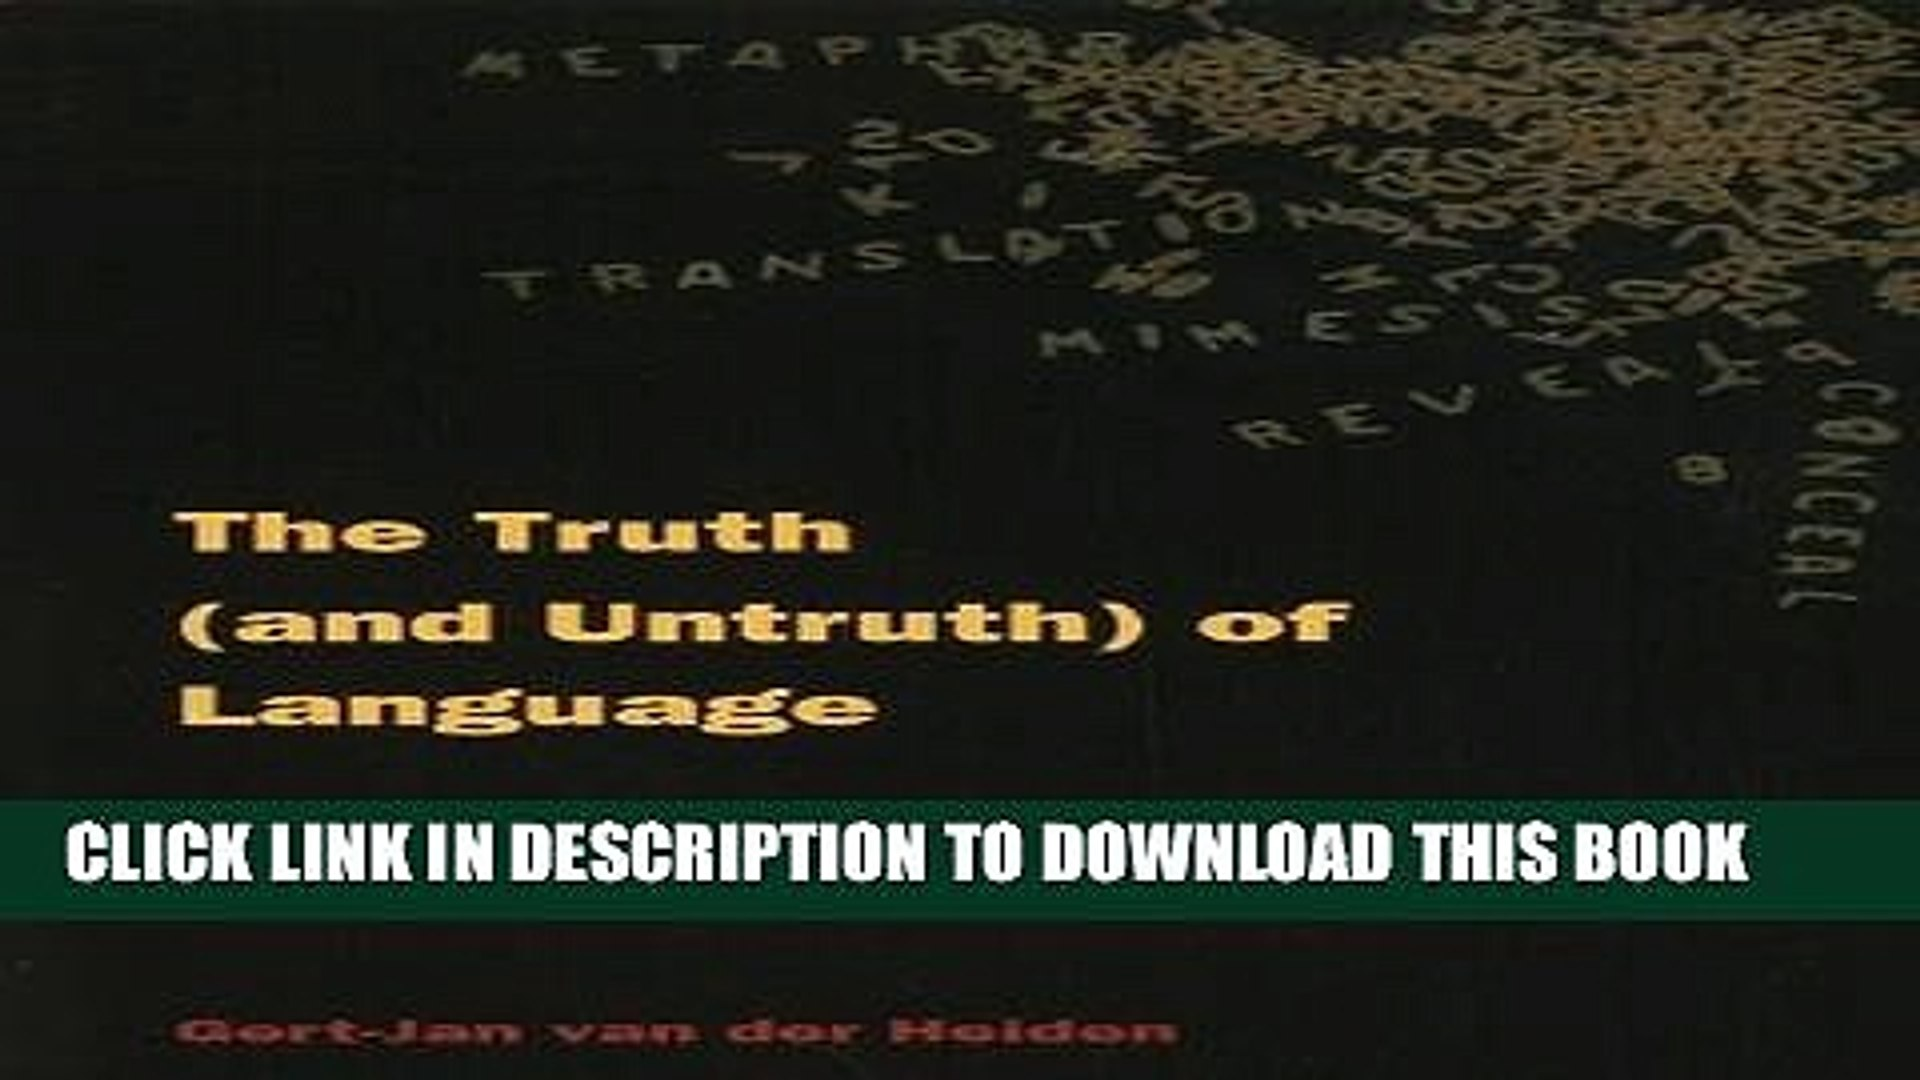 [PDF] The Truth (and Untruth) of Language: Heidegger, Rieoeur, and Derrida on Disclosure and